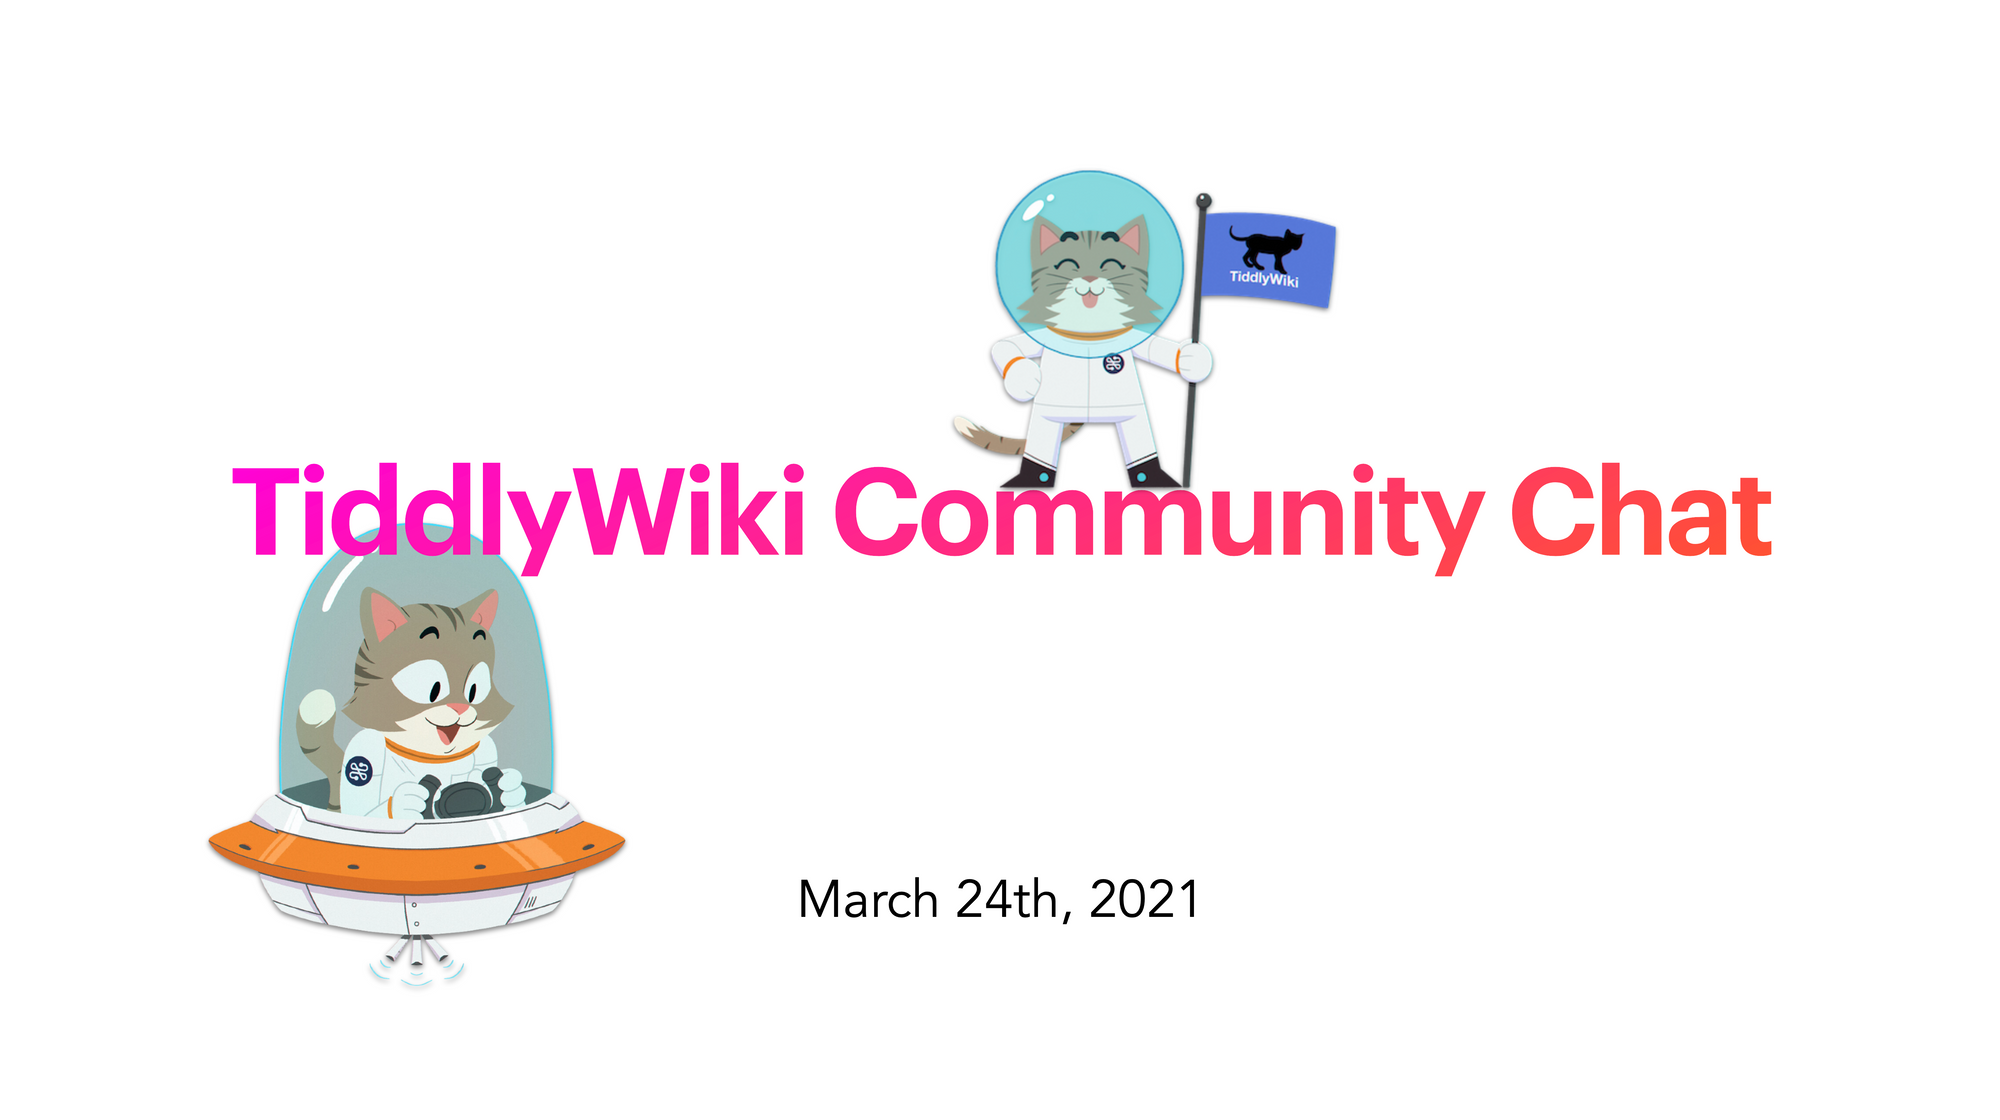 TiddlyWiki Community Chat